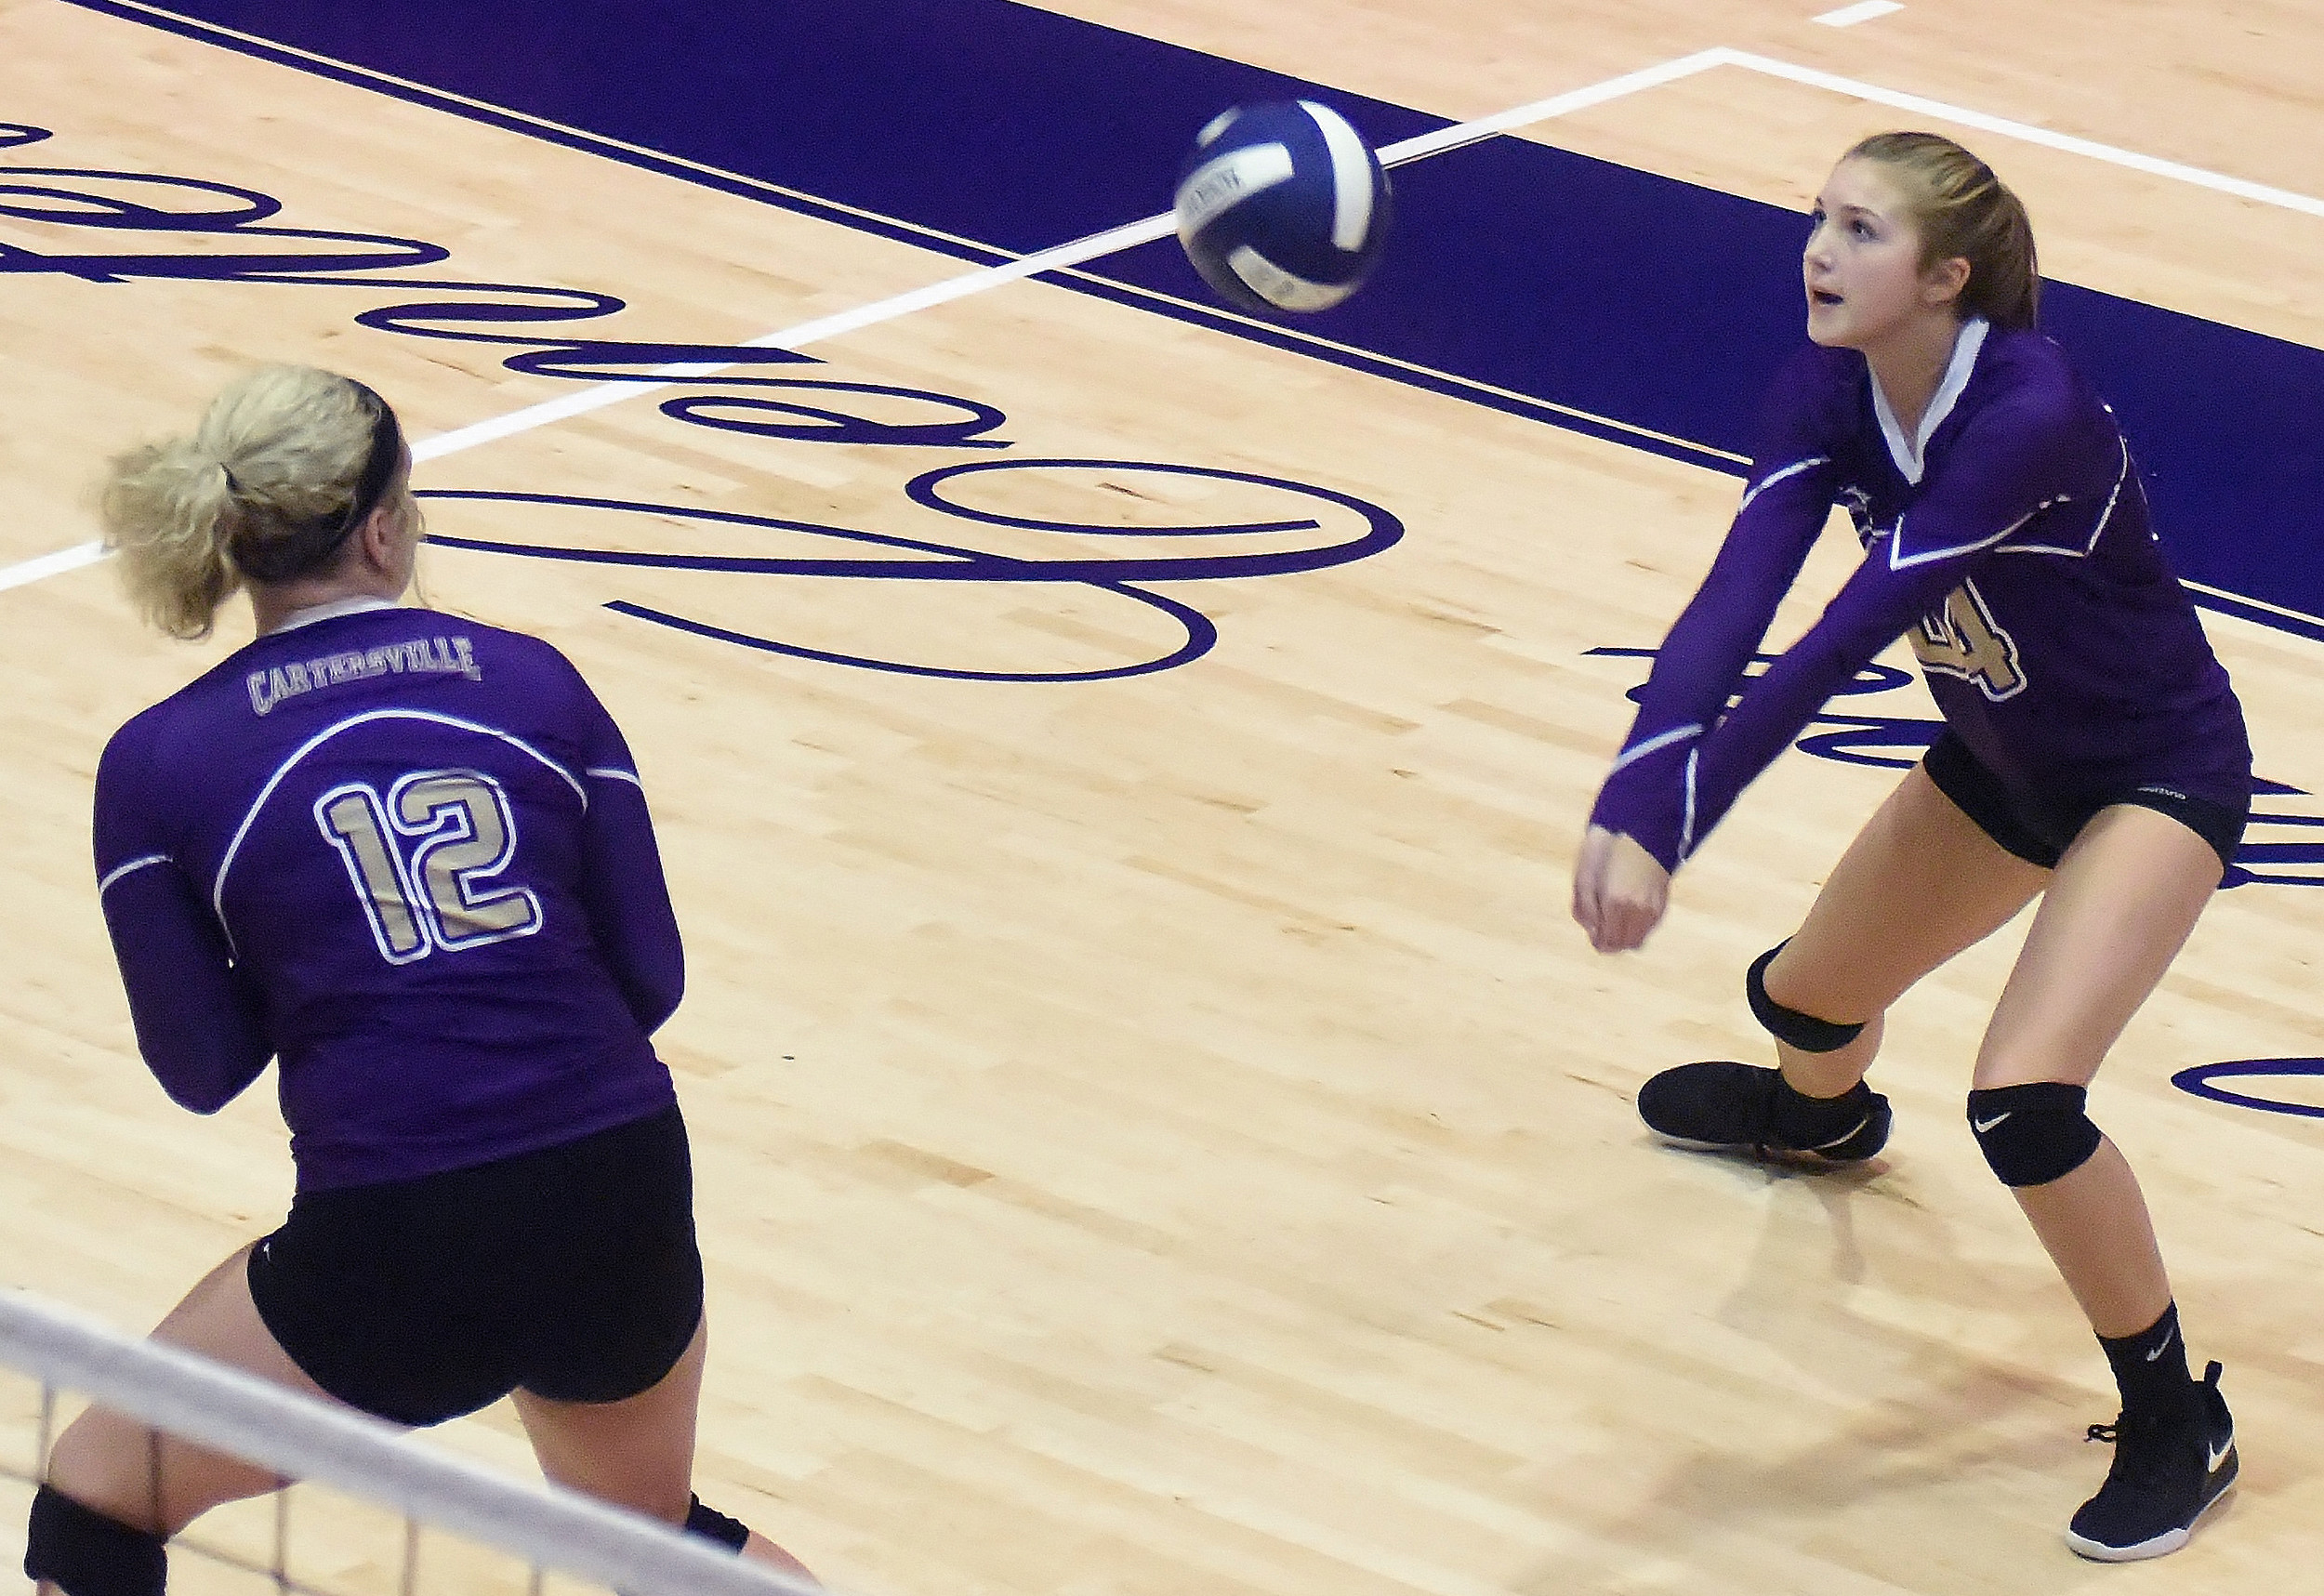 Cartersville's Halle Matthews digs the ball, as Rebekah Stevens looks on, during Tuesday's match against Chapel Hill. The Canes won the match in two sets, and the team also swept Troup County during the tri-match.